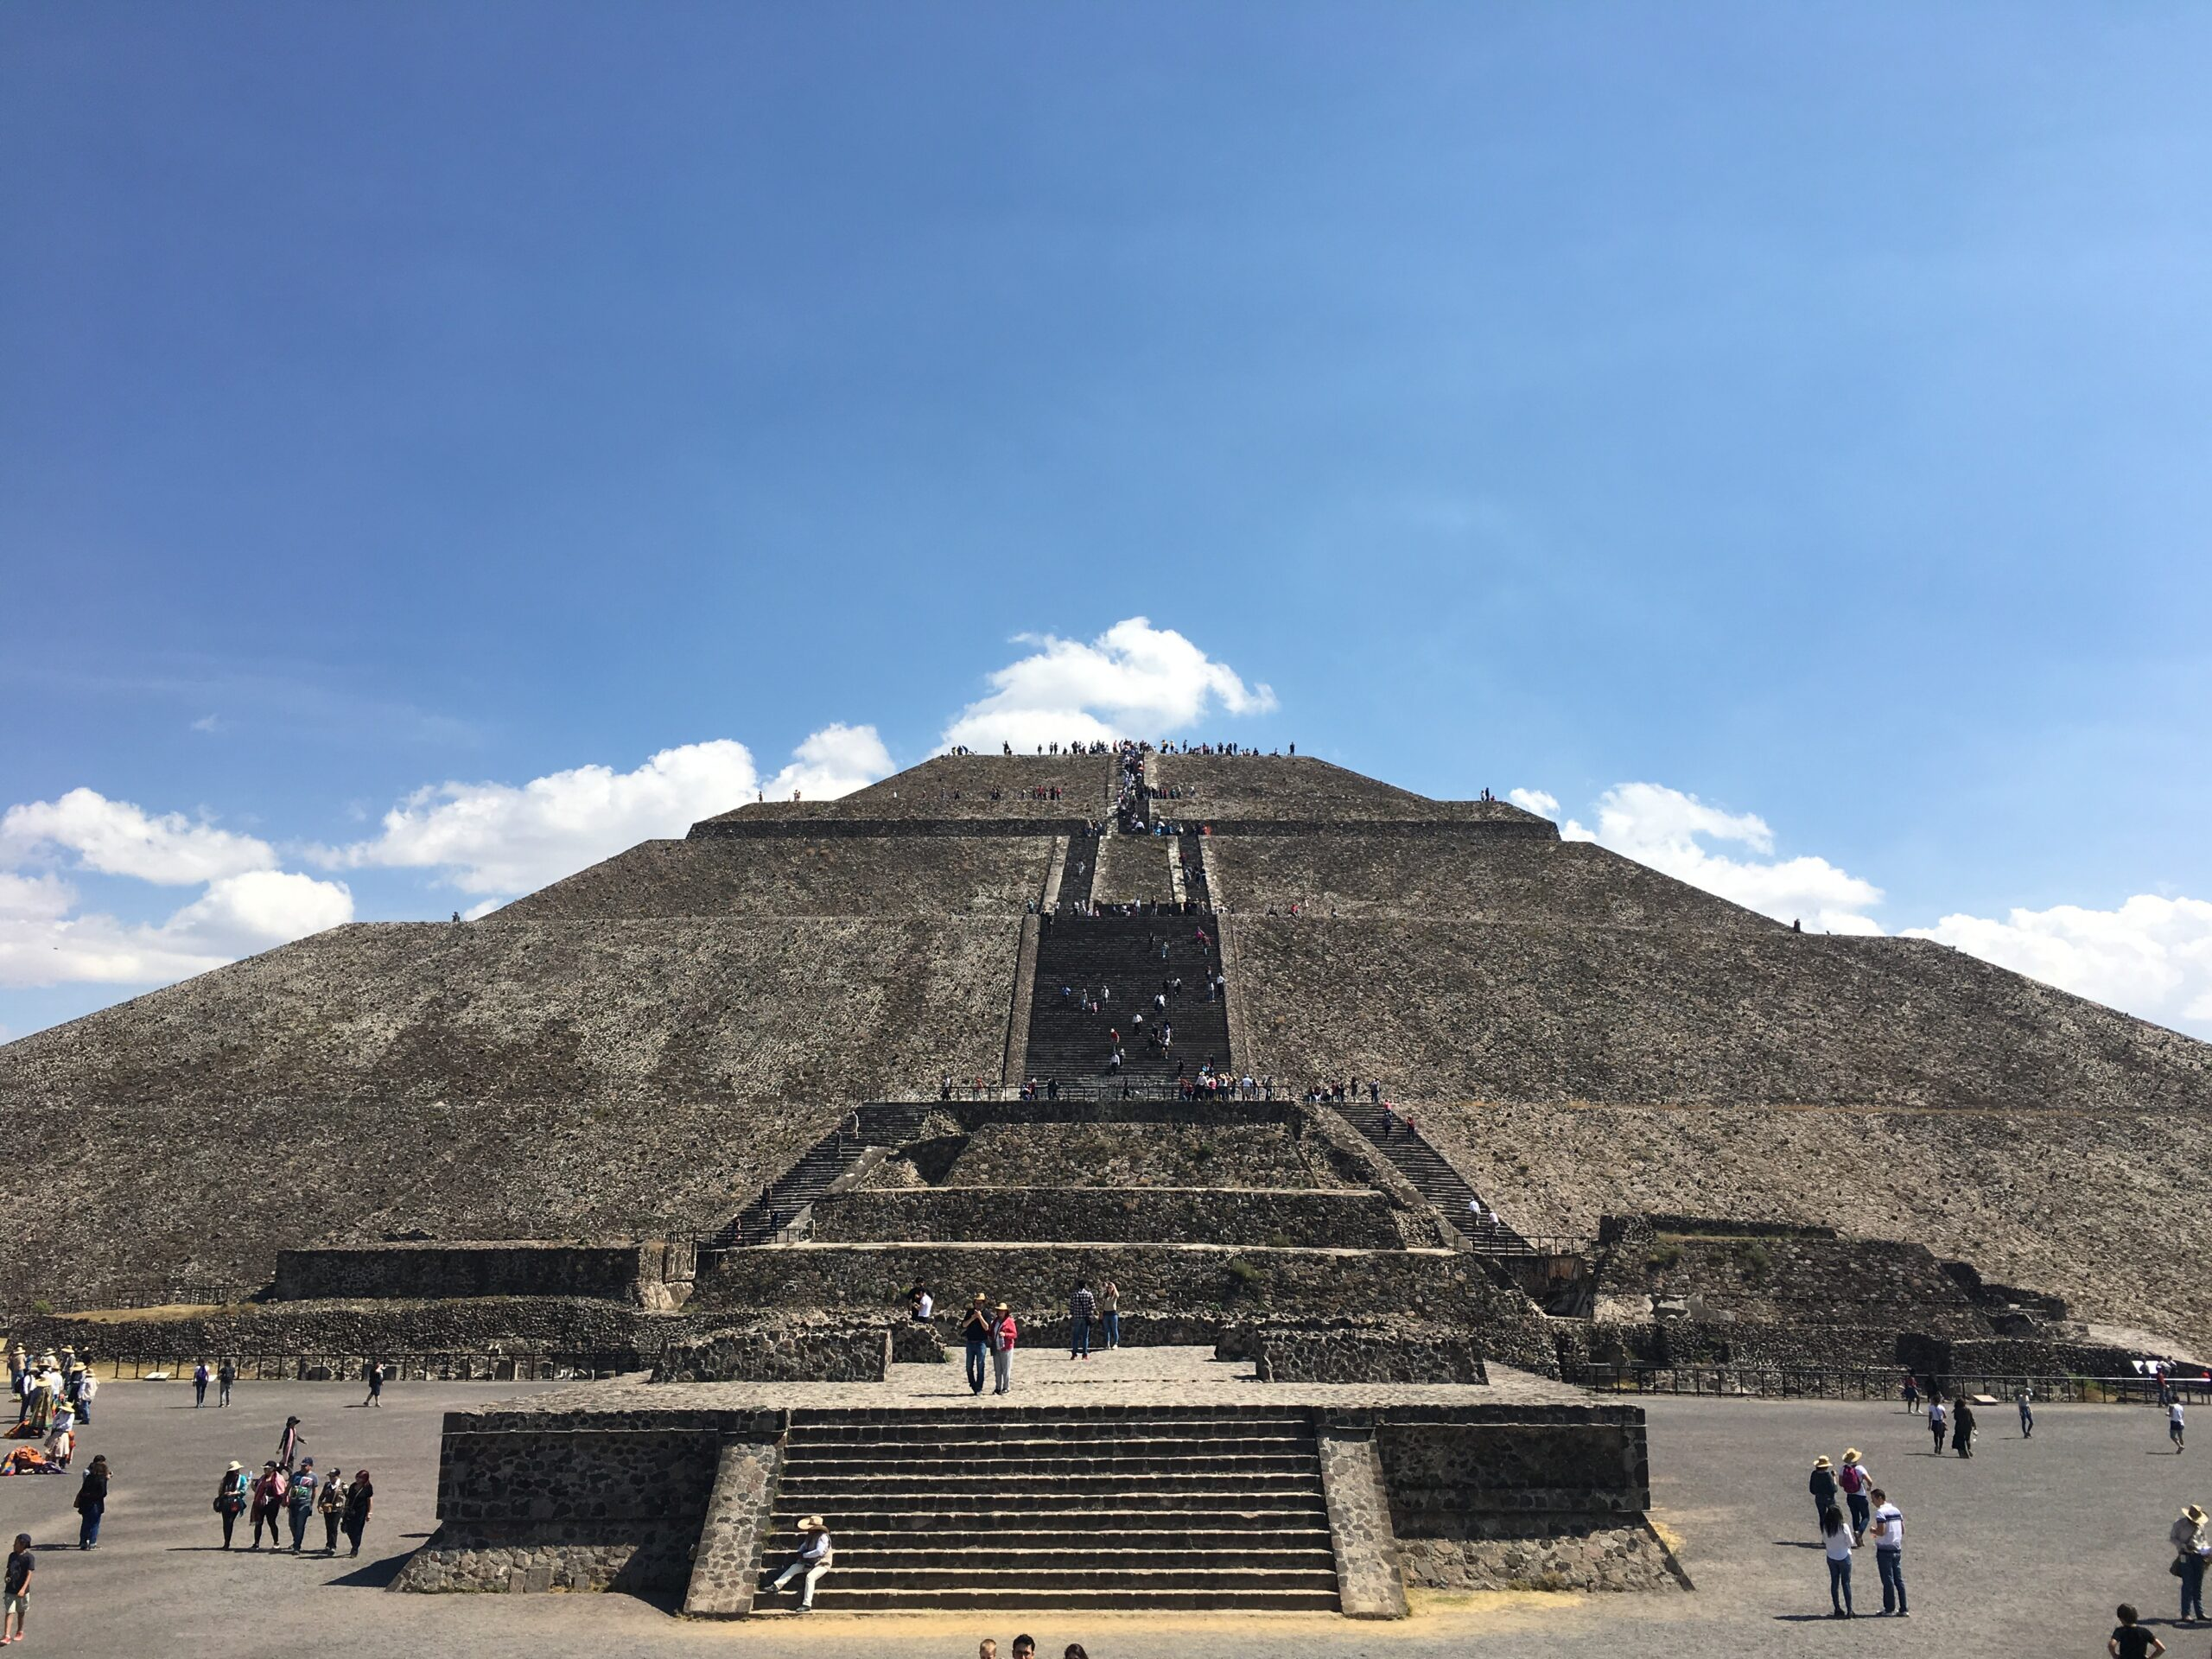 Pyramid of the Sun at Teotihuacan, north of Mexico City